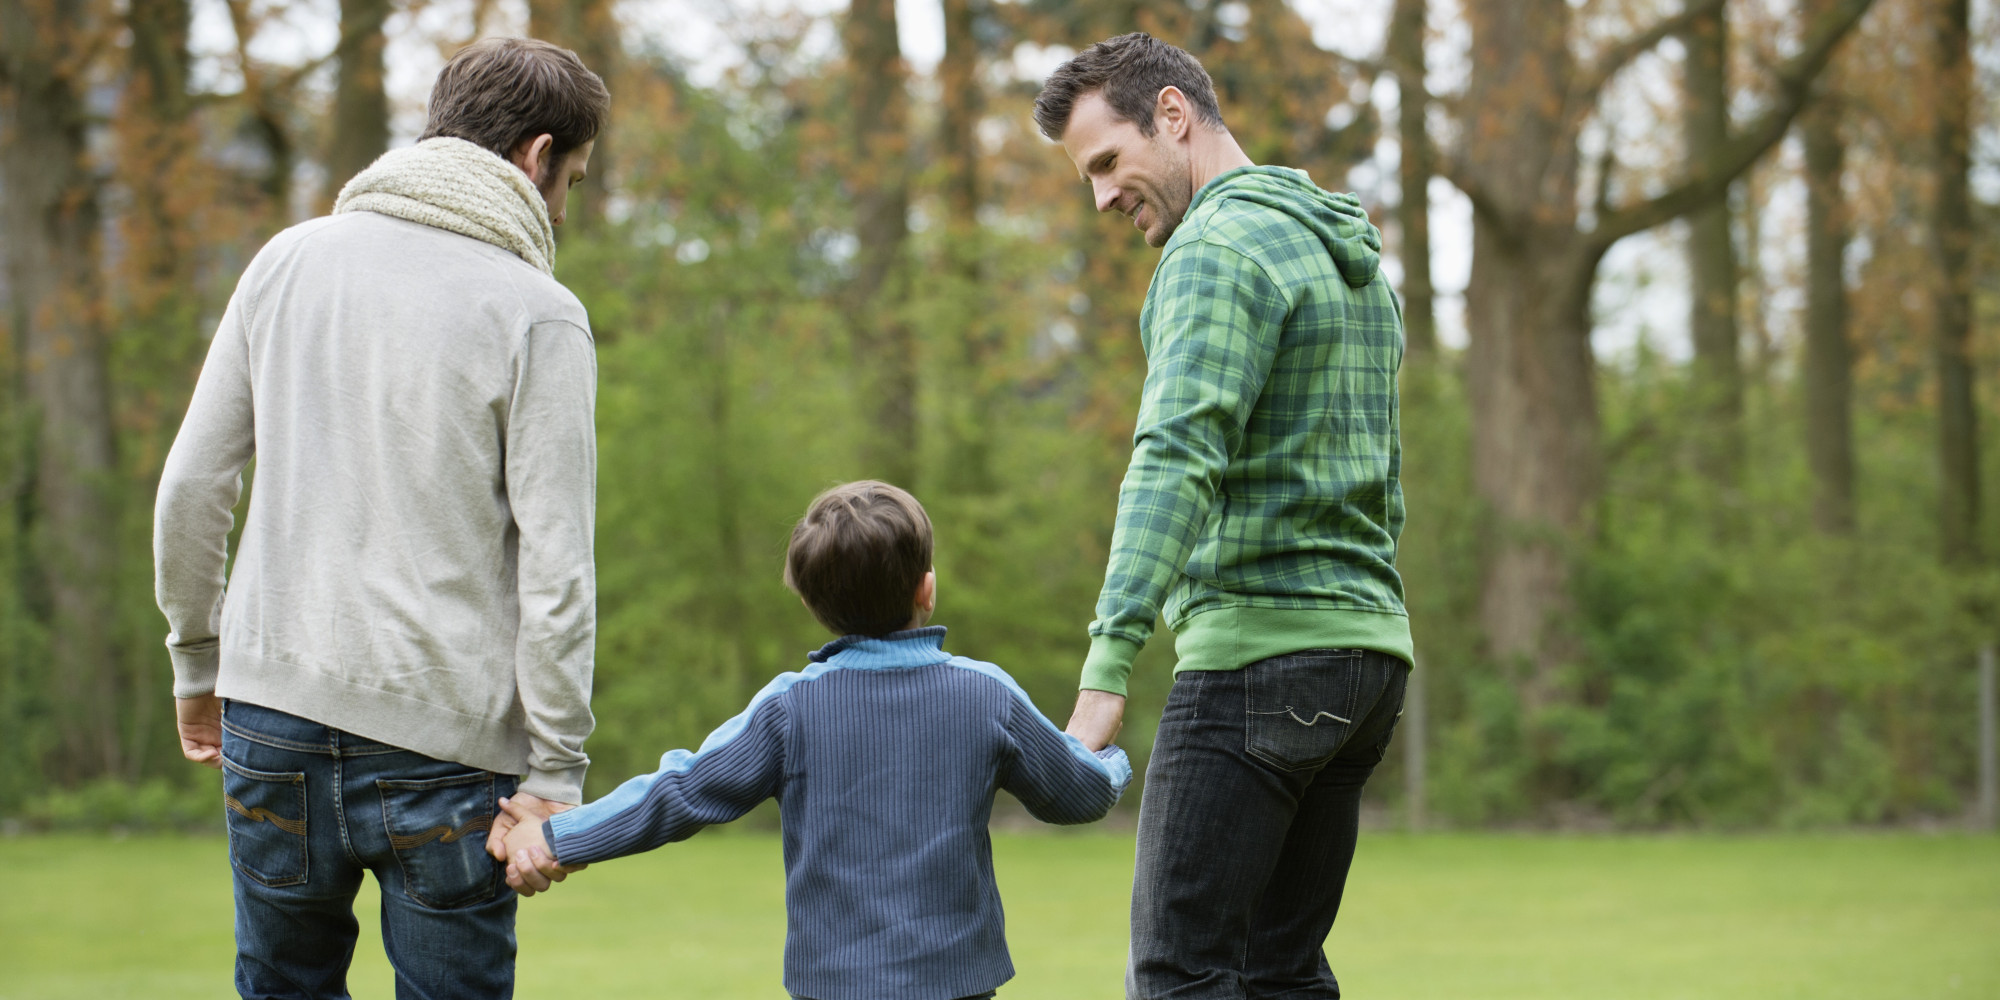 Problems with gay adoptions